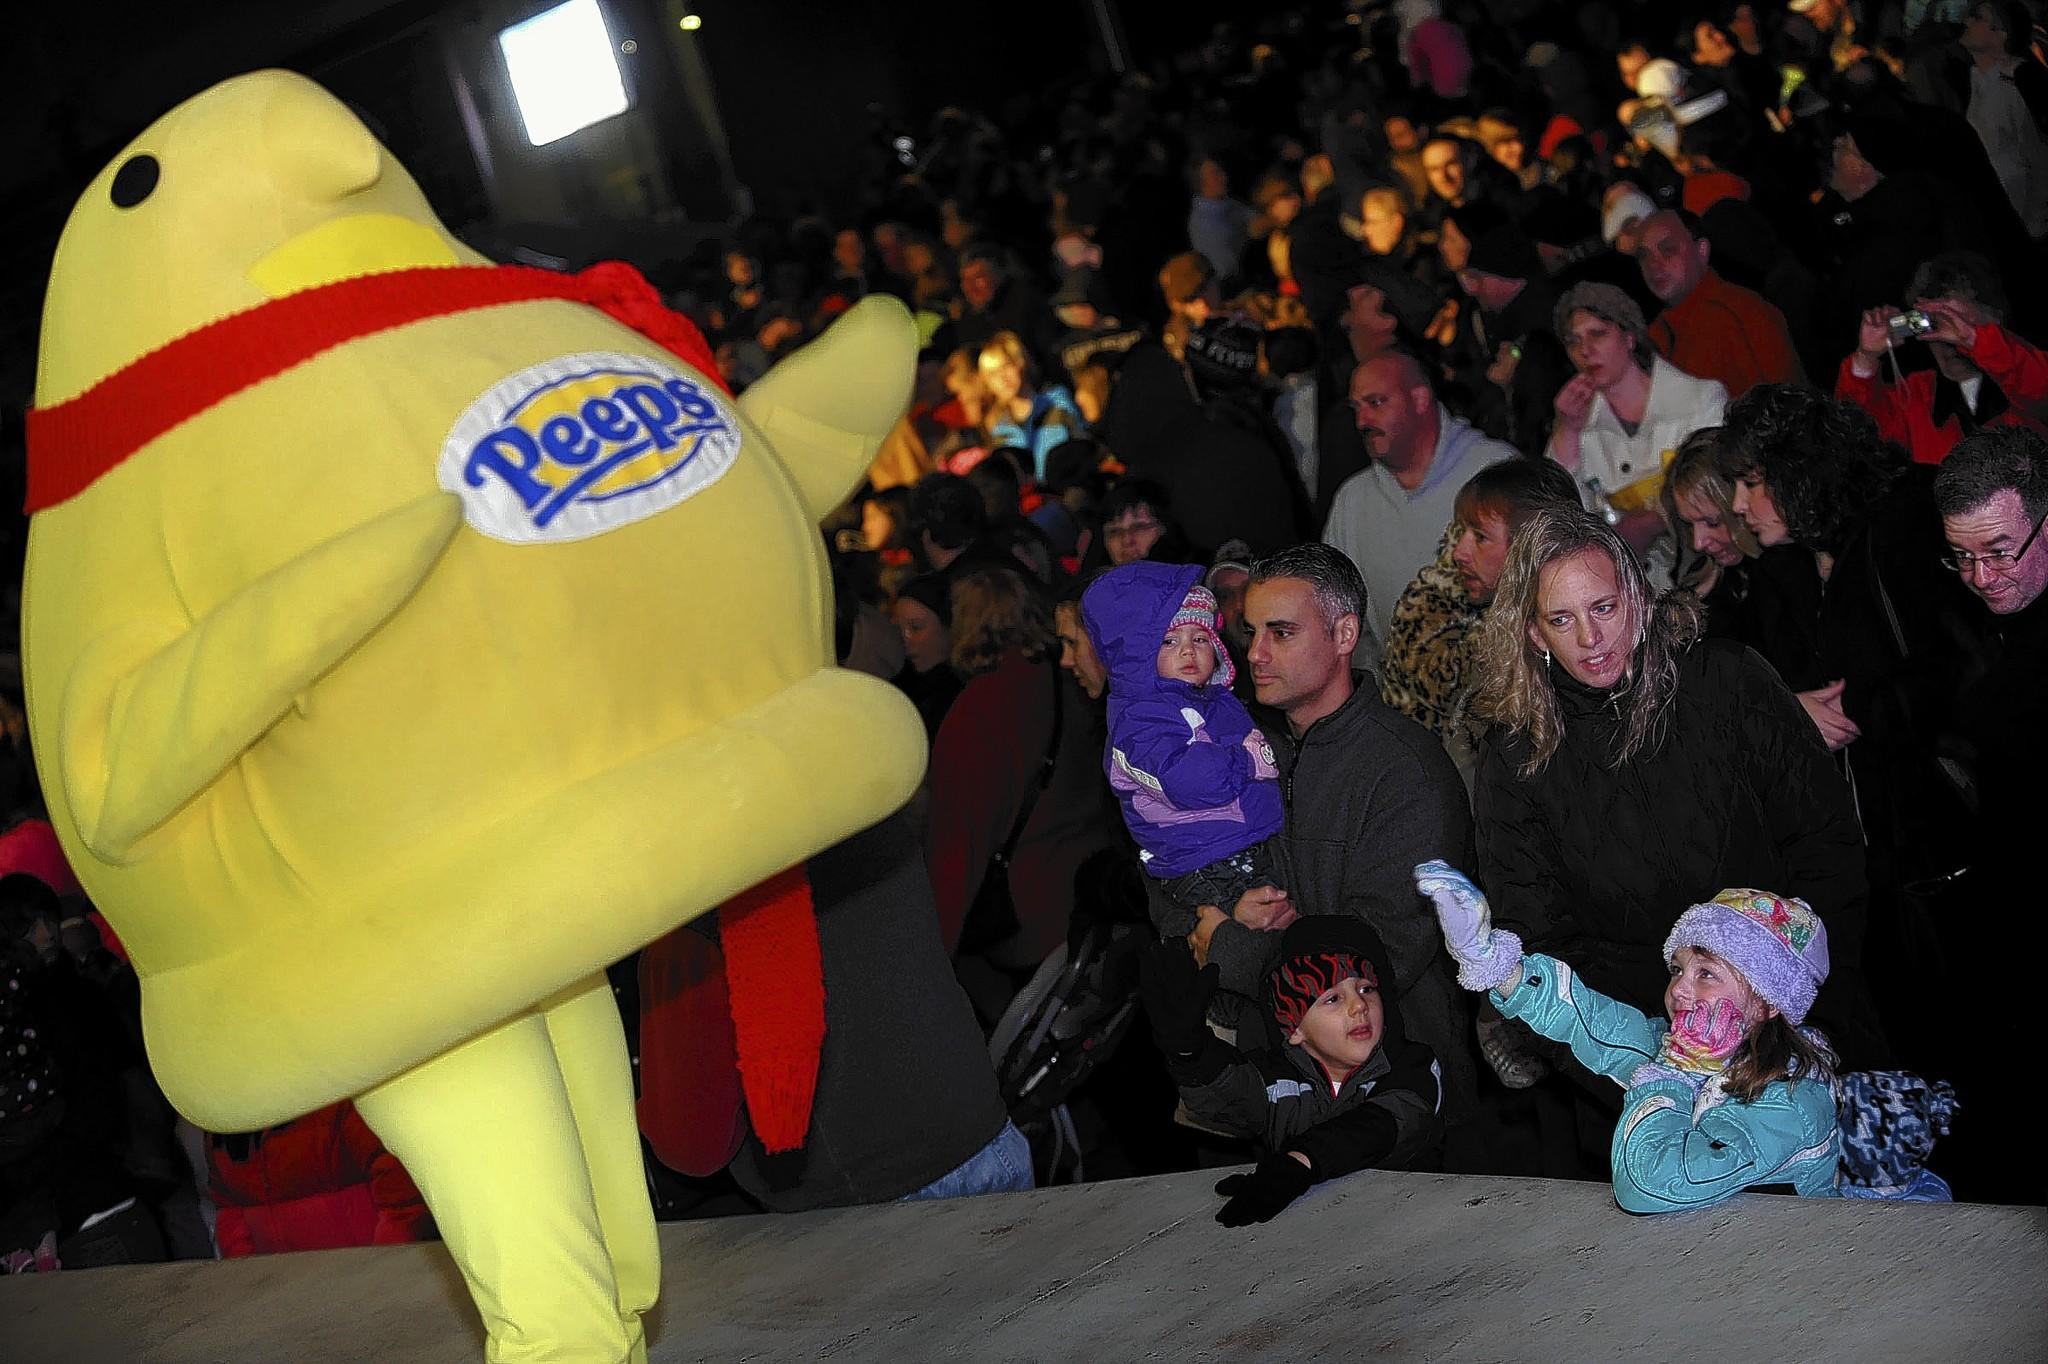 Peeps Fest rings in the new year early with a 5:15 p.m. Peeps drop followed by fireworks at SteelStacks.